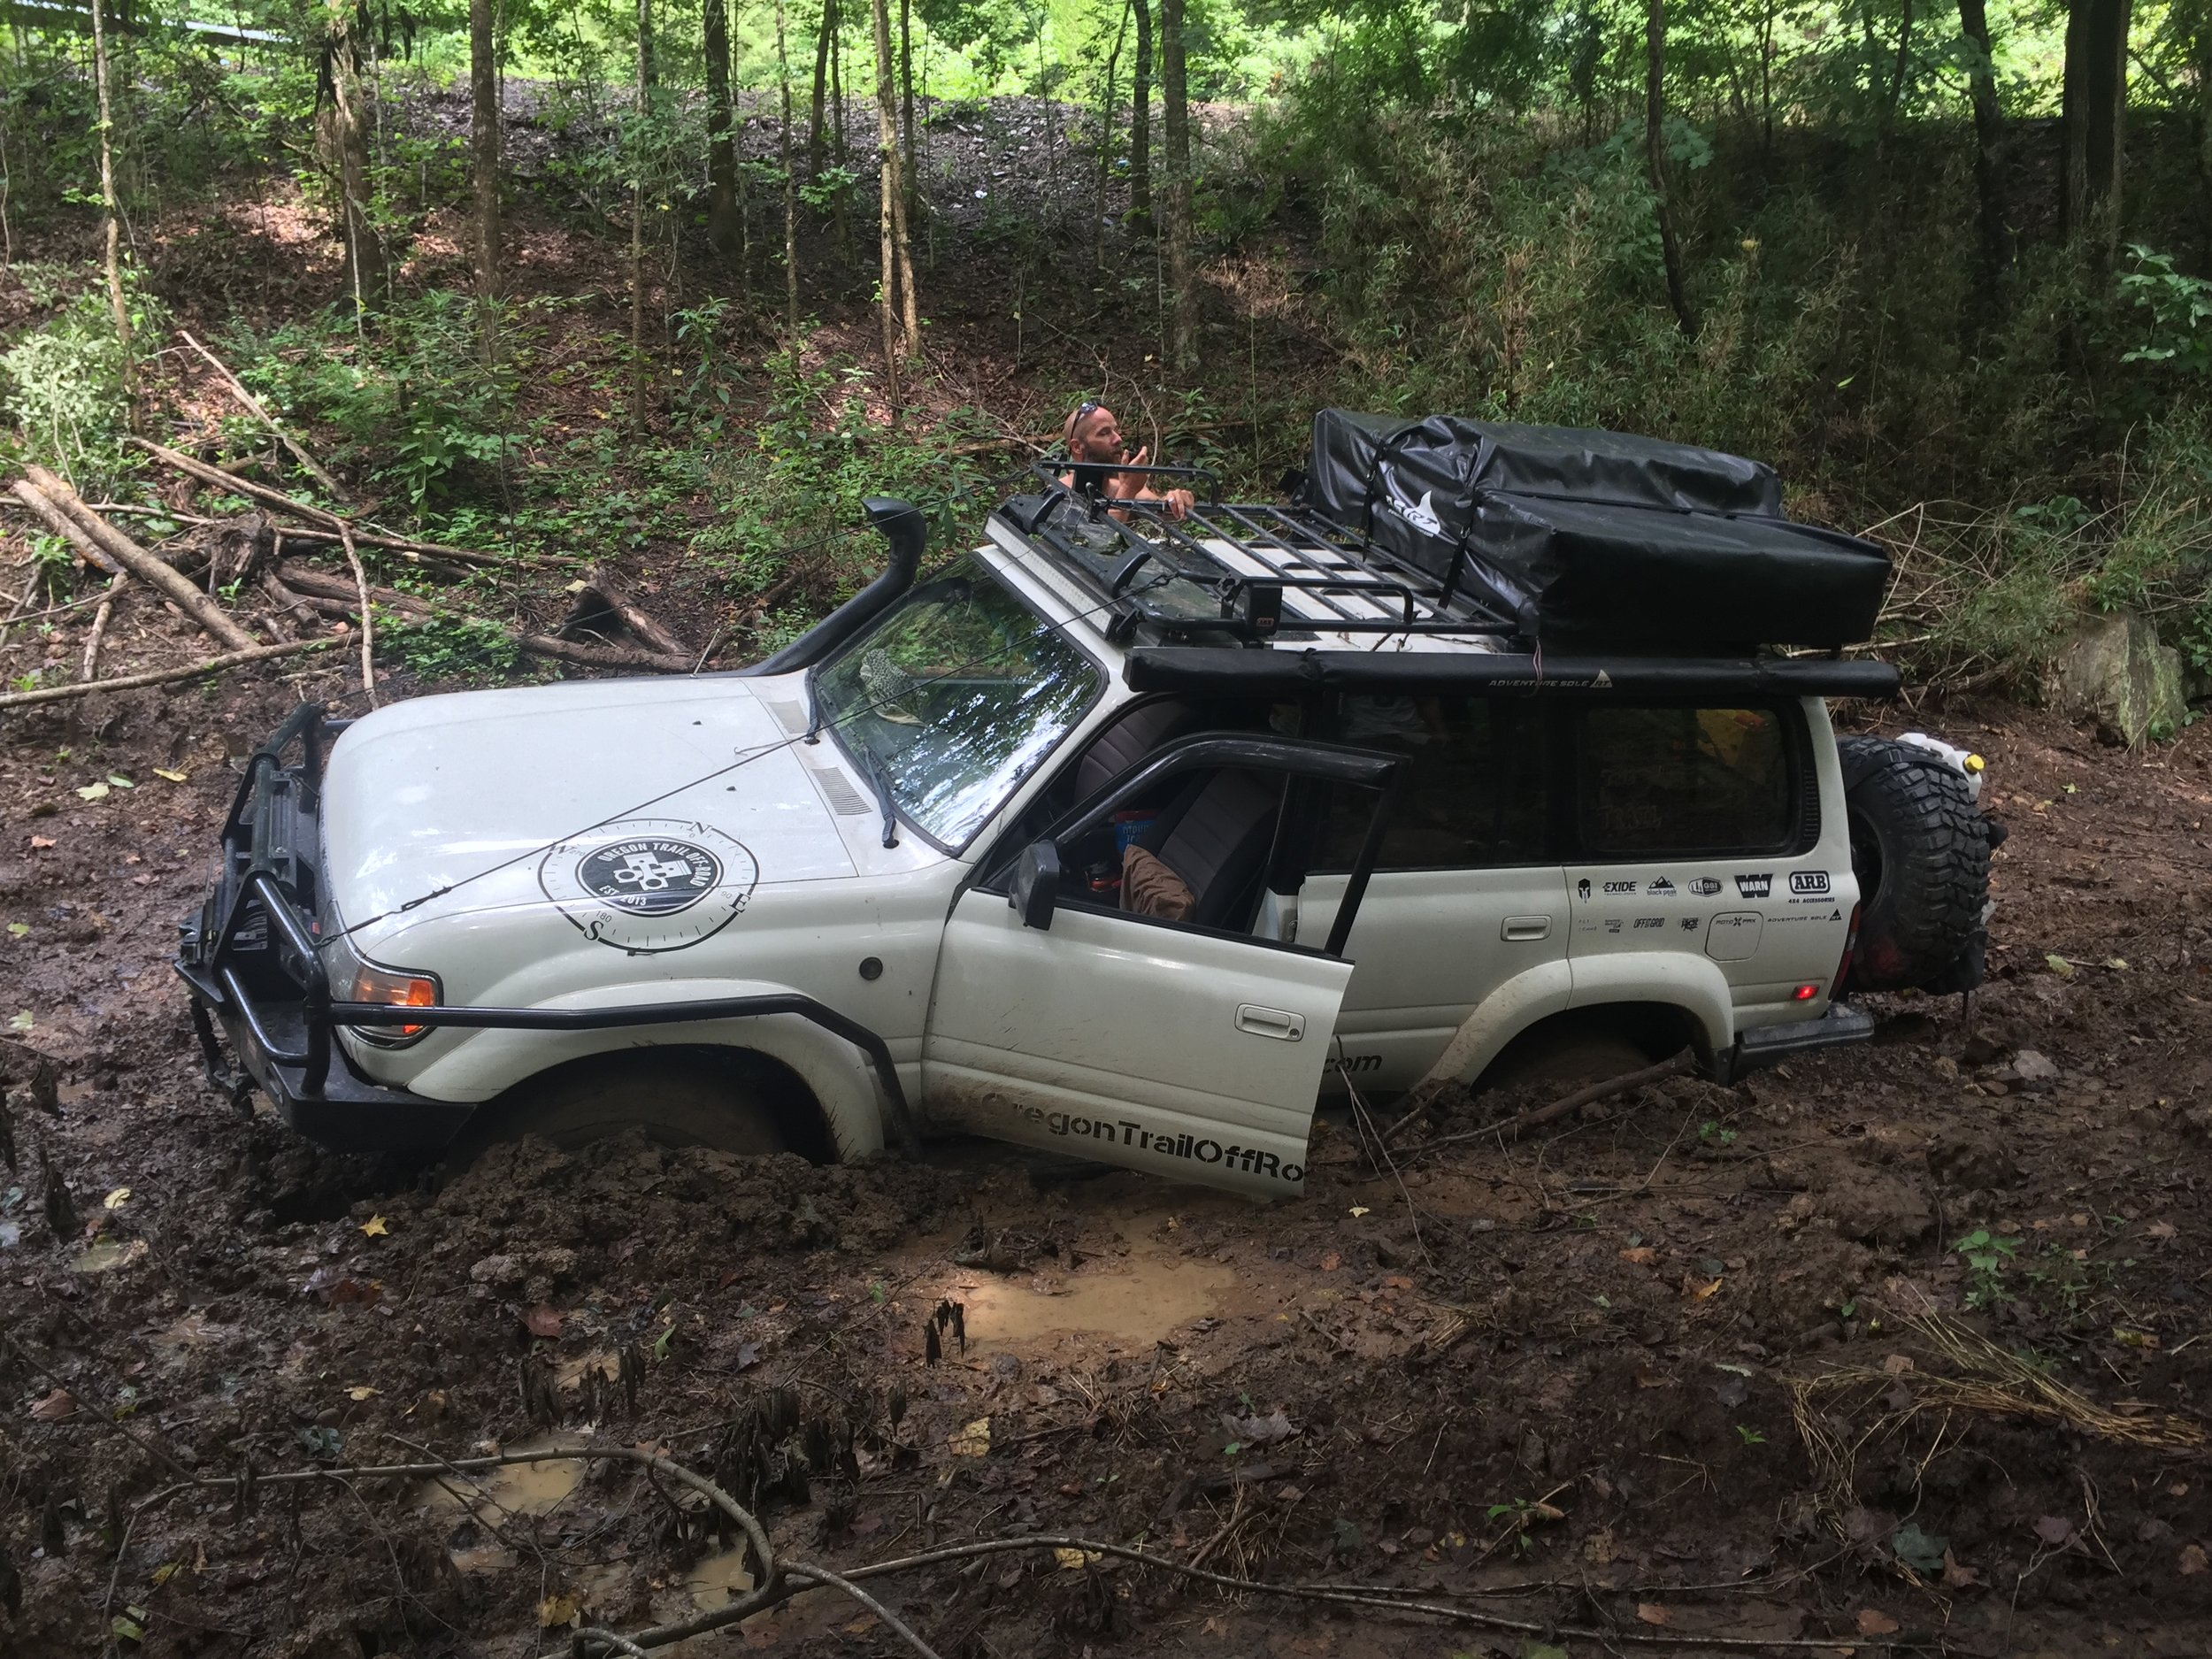 1993 Toyota Land Cruiser GVWR: 6525 lbs; weight as pictured: 7200 lbs, or 675 lbs over GVWR.